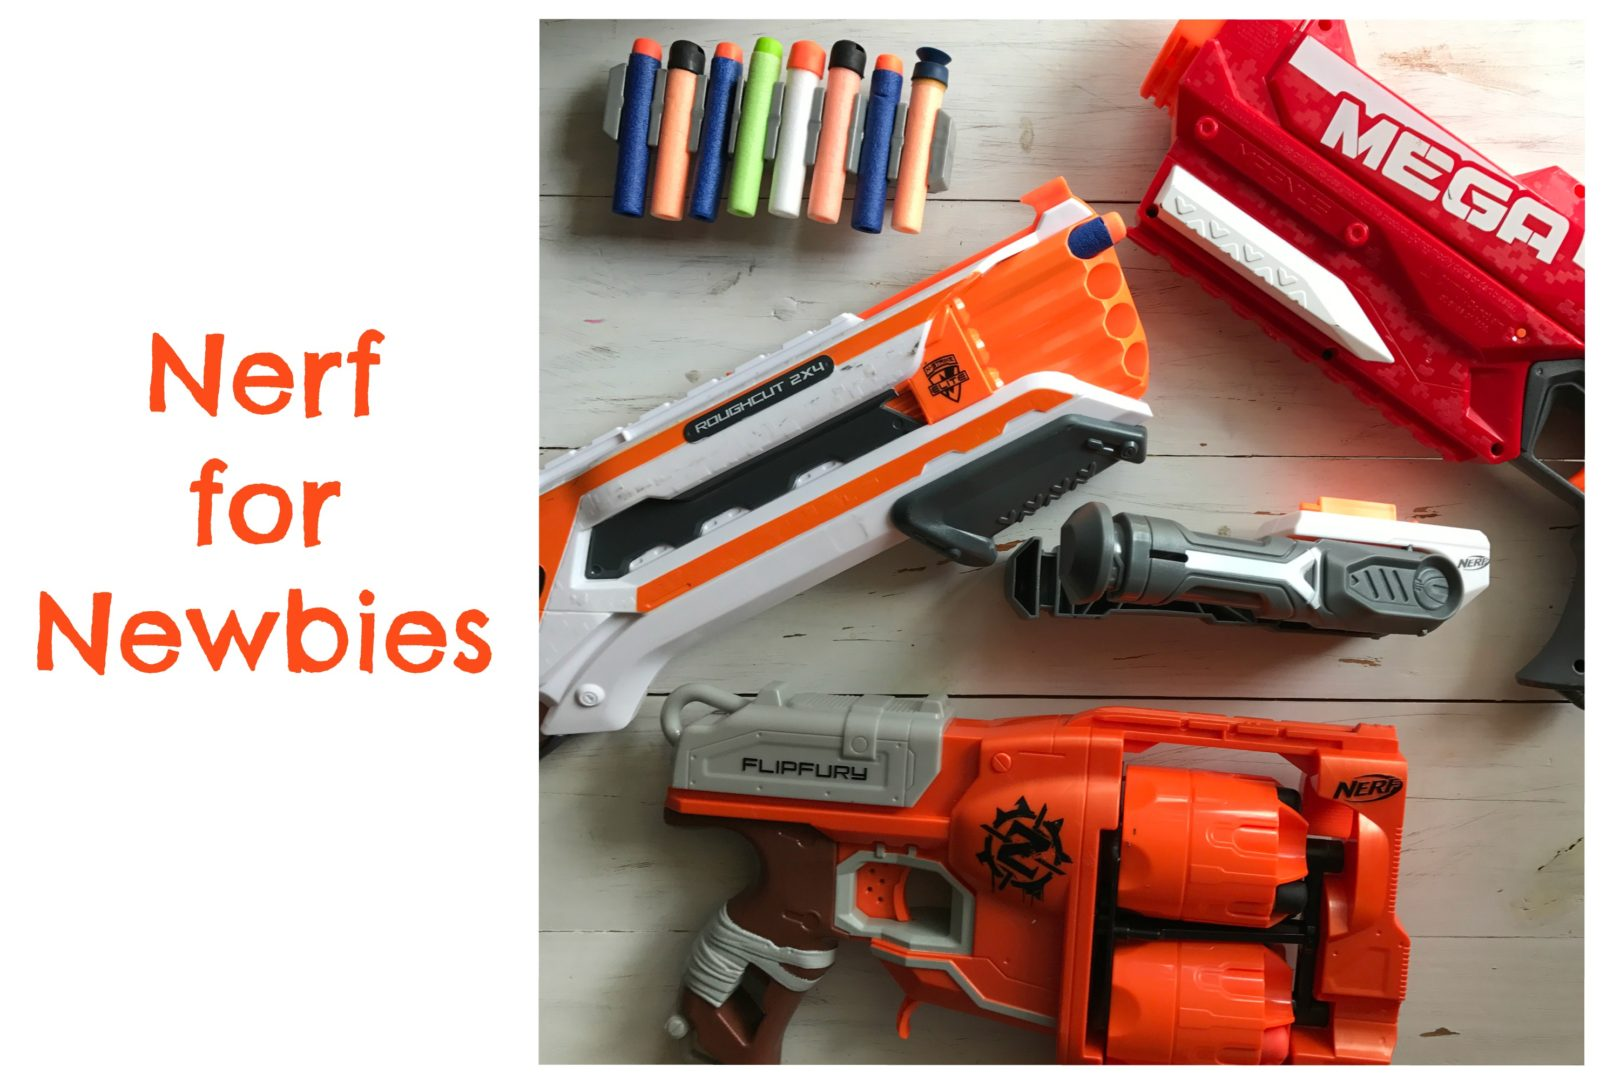 Nerf for Newbies | Always Moving Mommy | Not sure where to start when it comes to Nerf? These tips will help you get started!